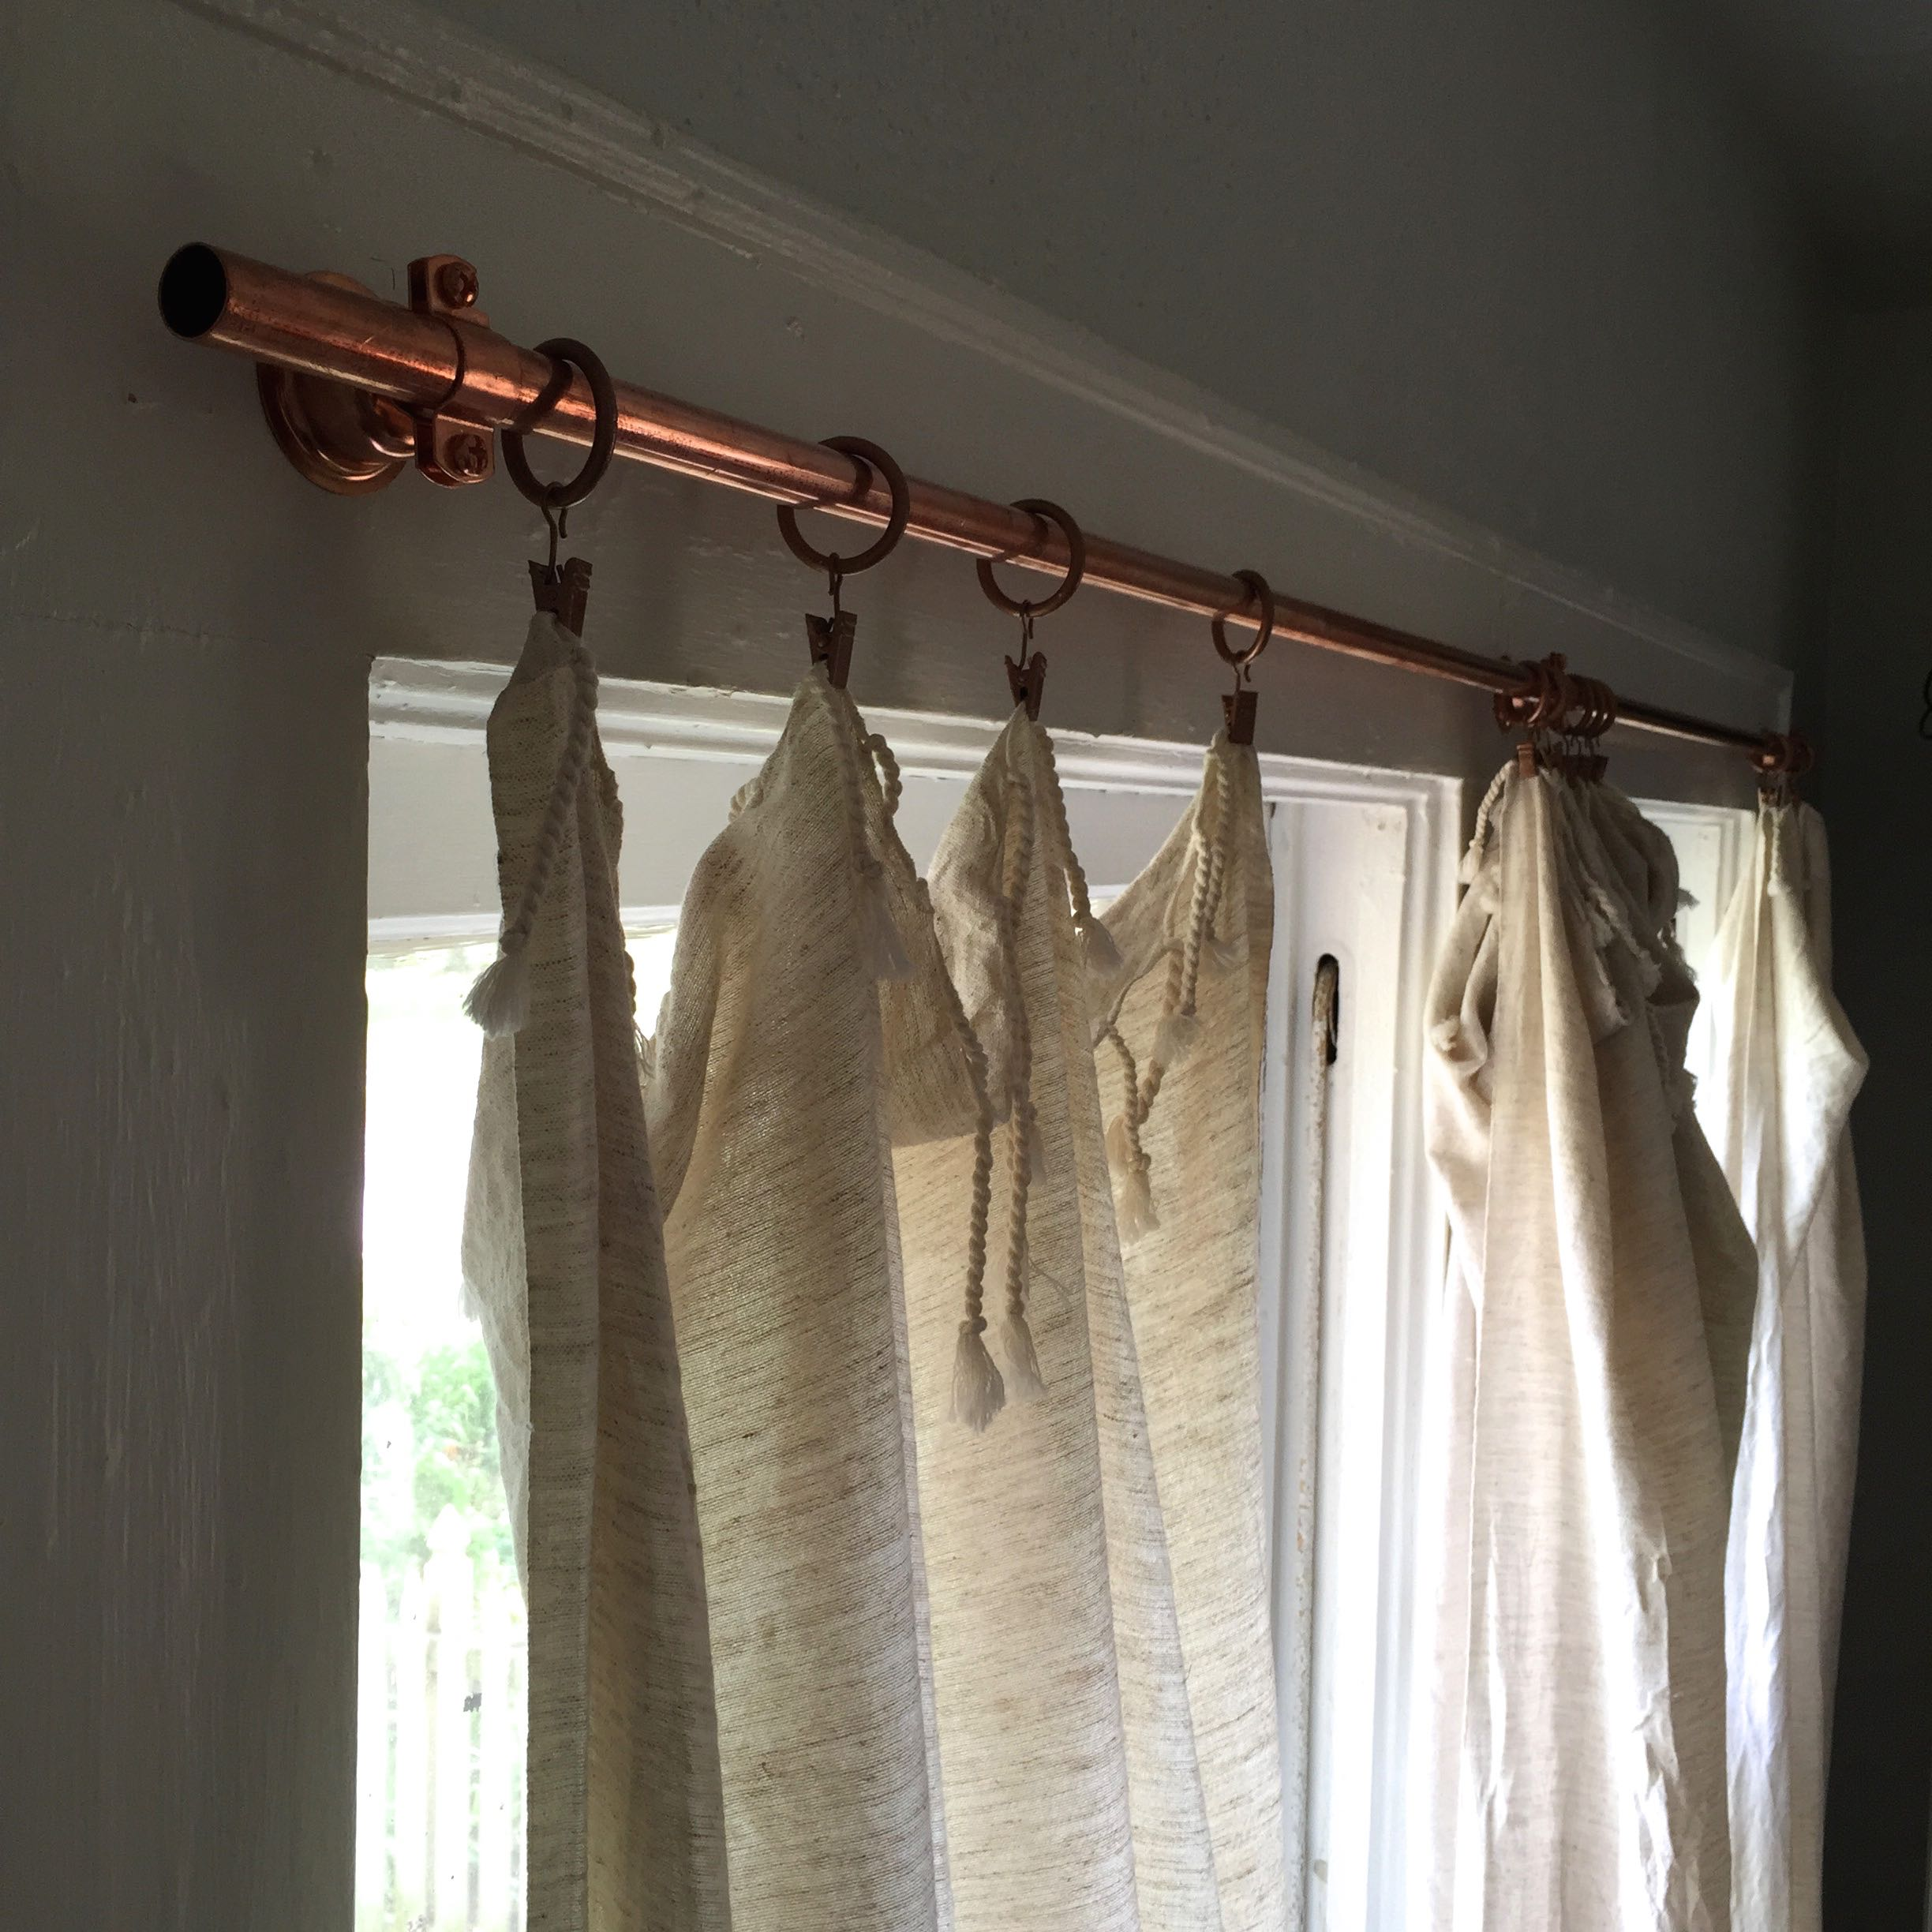 diy handmade copper pipe curtain rod project bohemian